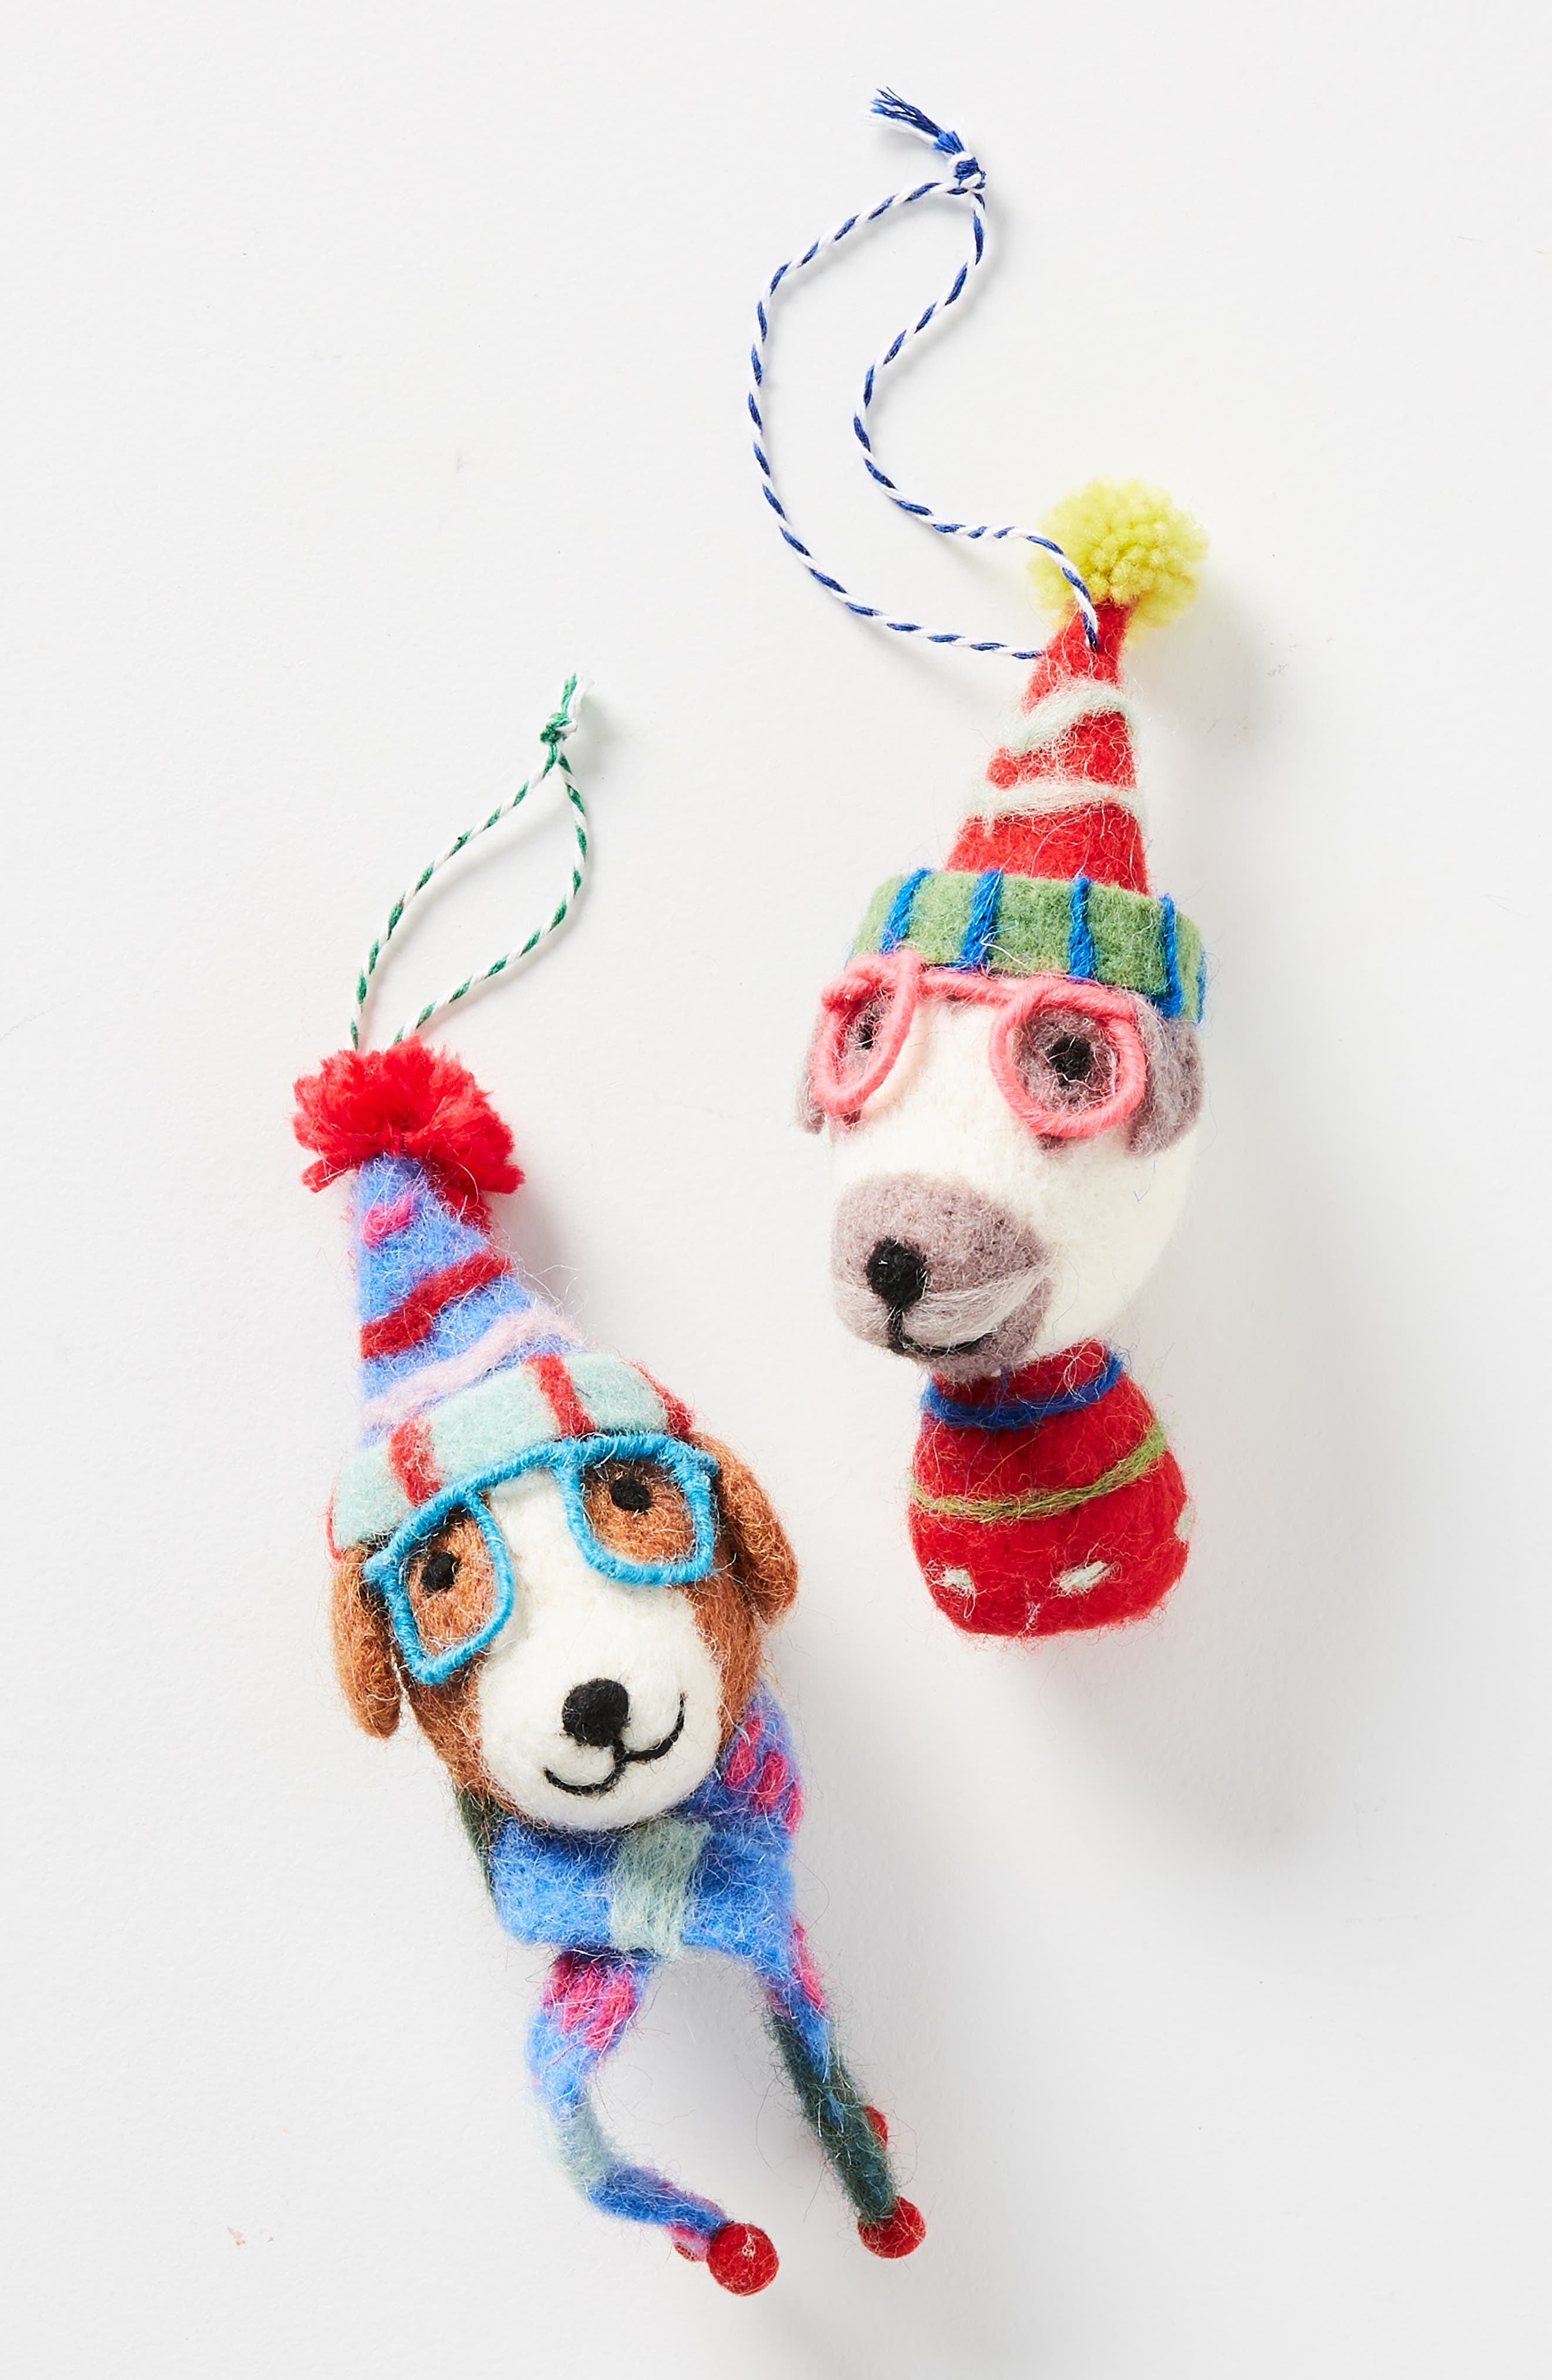 ANTHROPOLOGIE,                             Decked Out Dog Felt Ornament,                             Main thumbnail 1, color,                             200